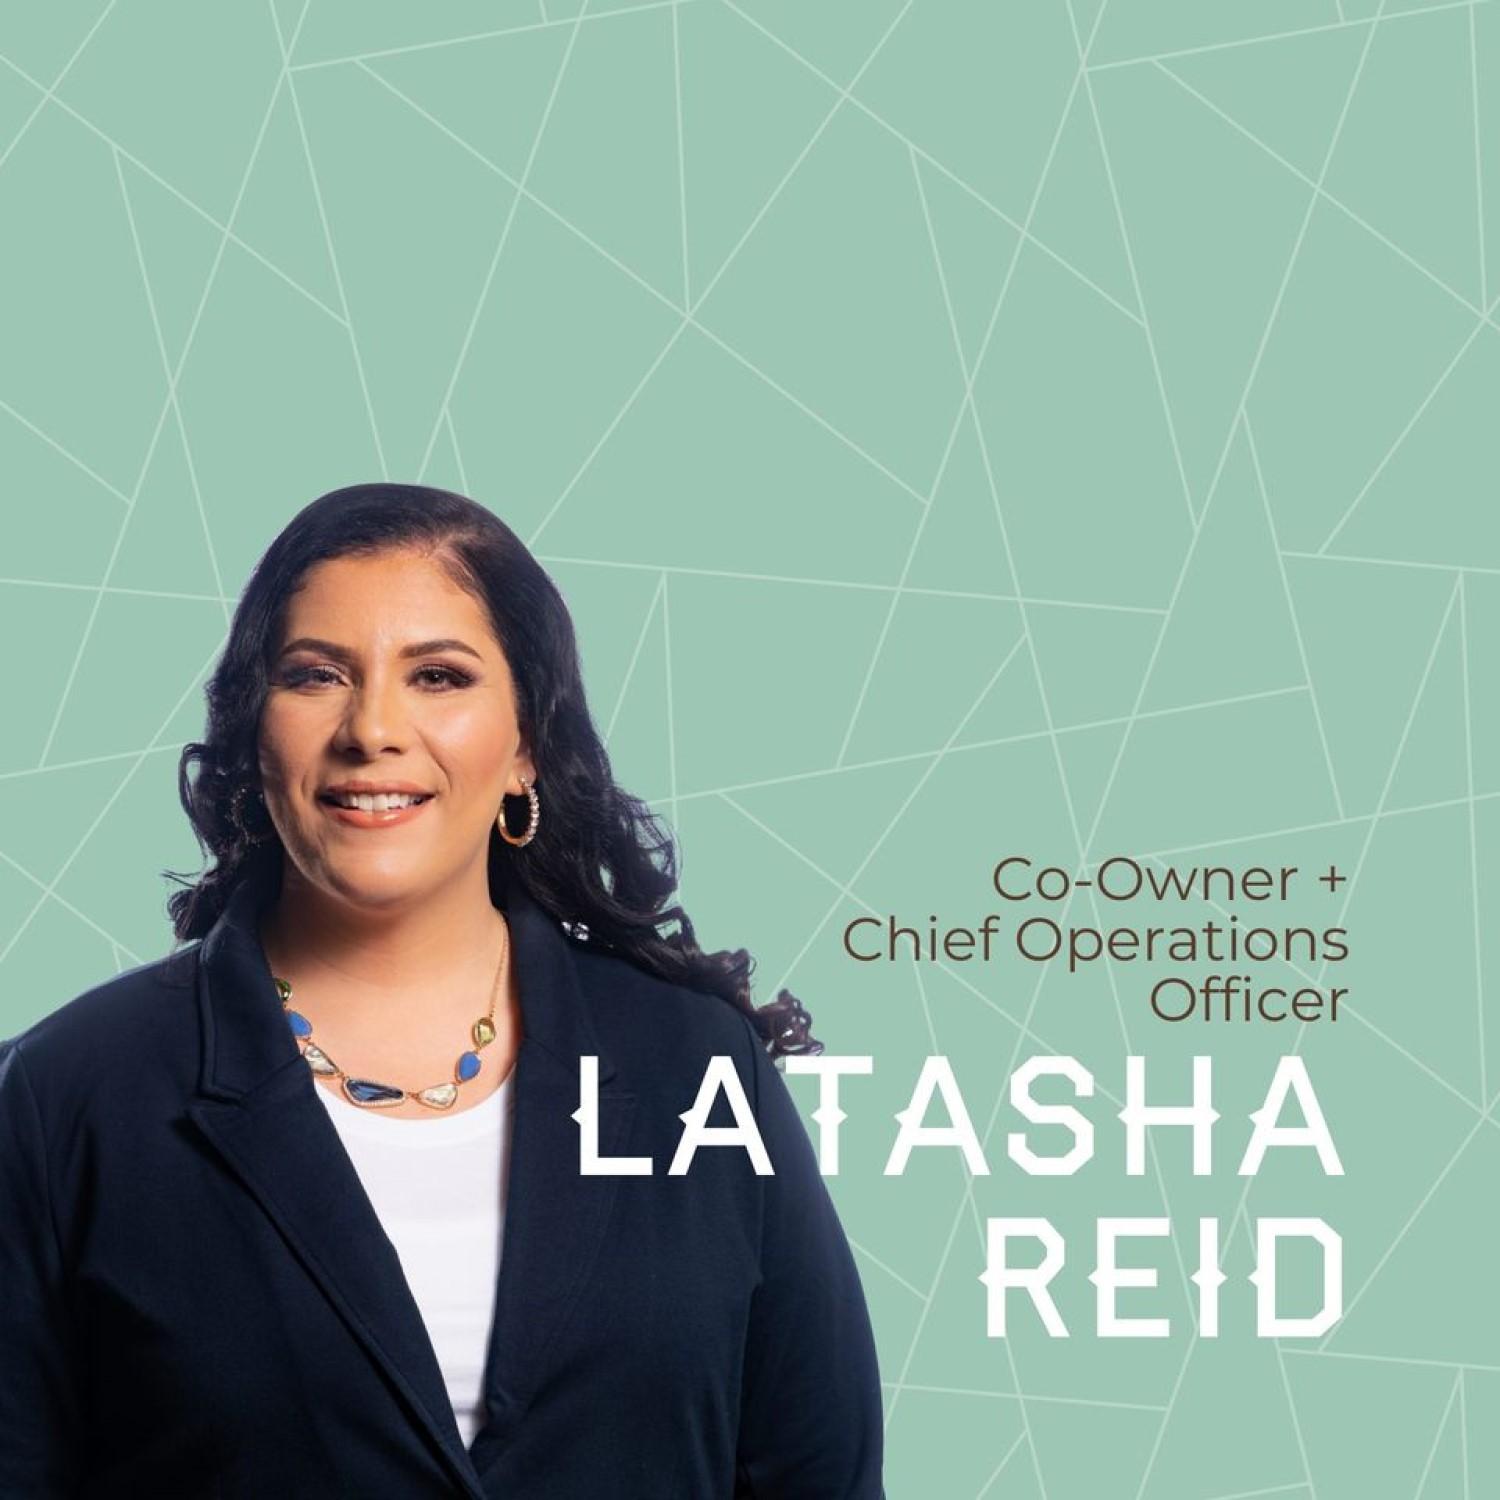 Latasha Reid, COO & Co-Owner of Bespoke Ventures and Investments, LLC DBA Bespoke Campgrounds